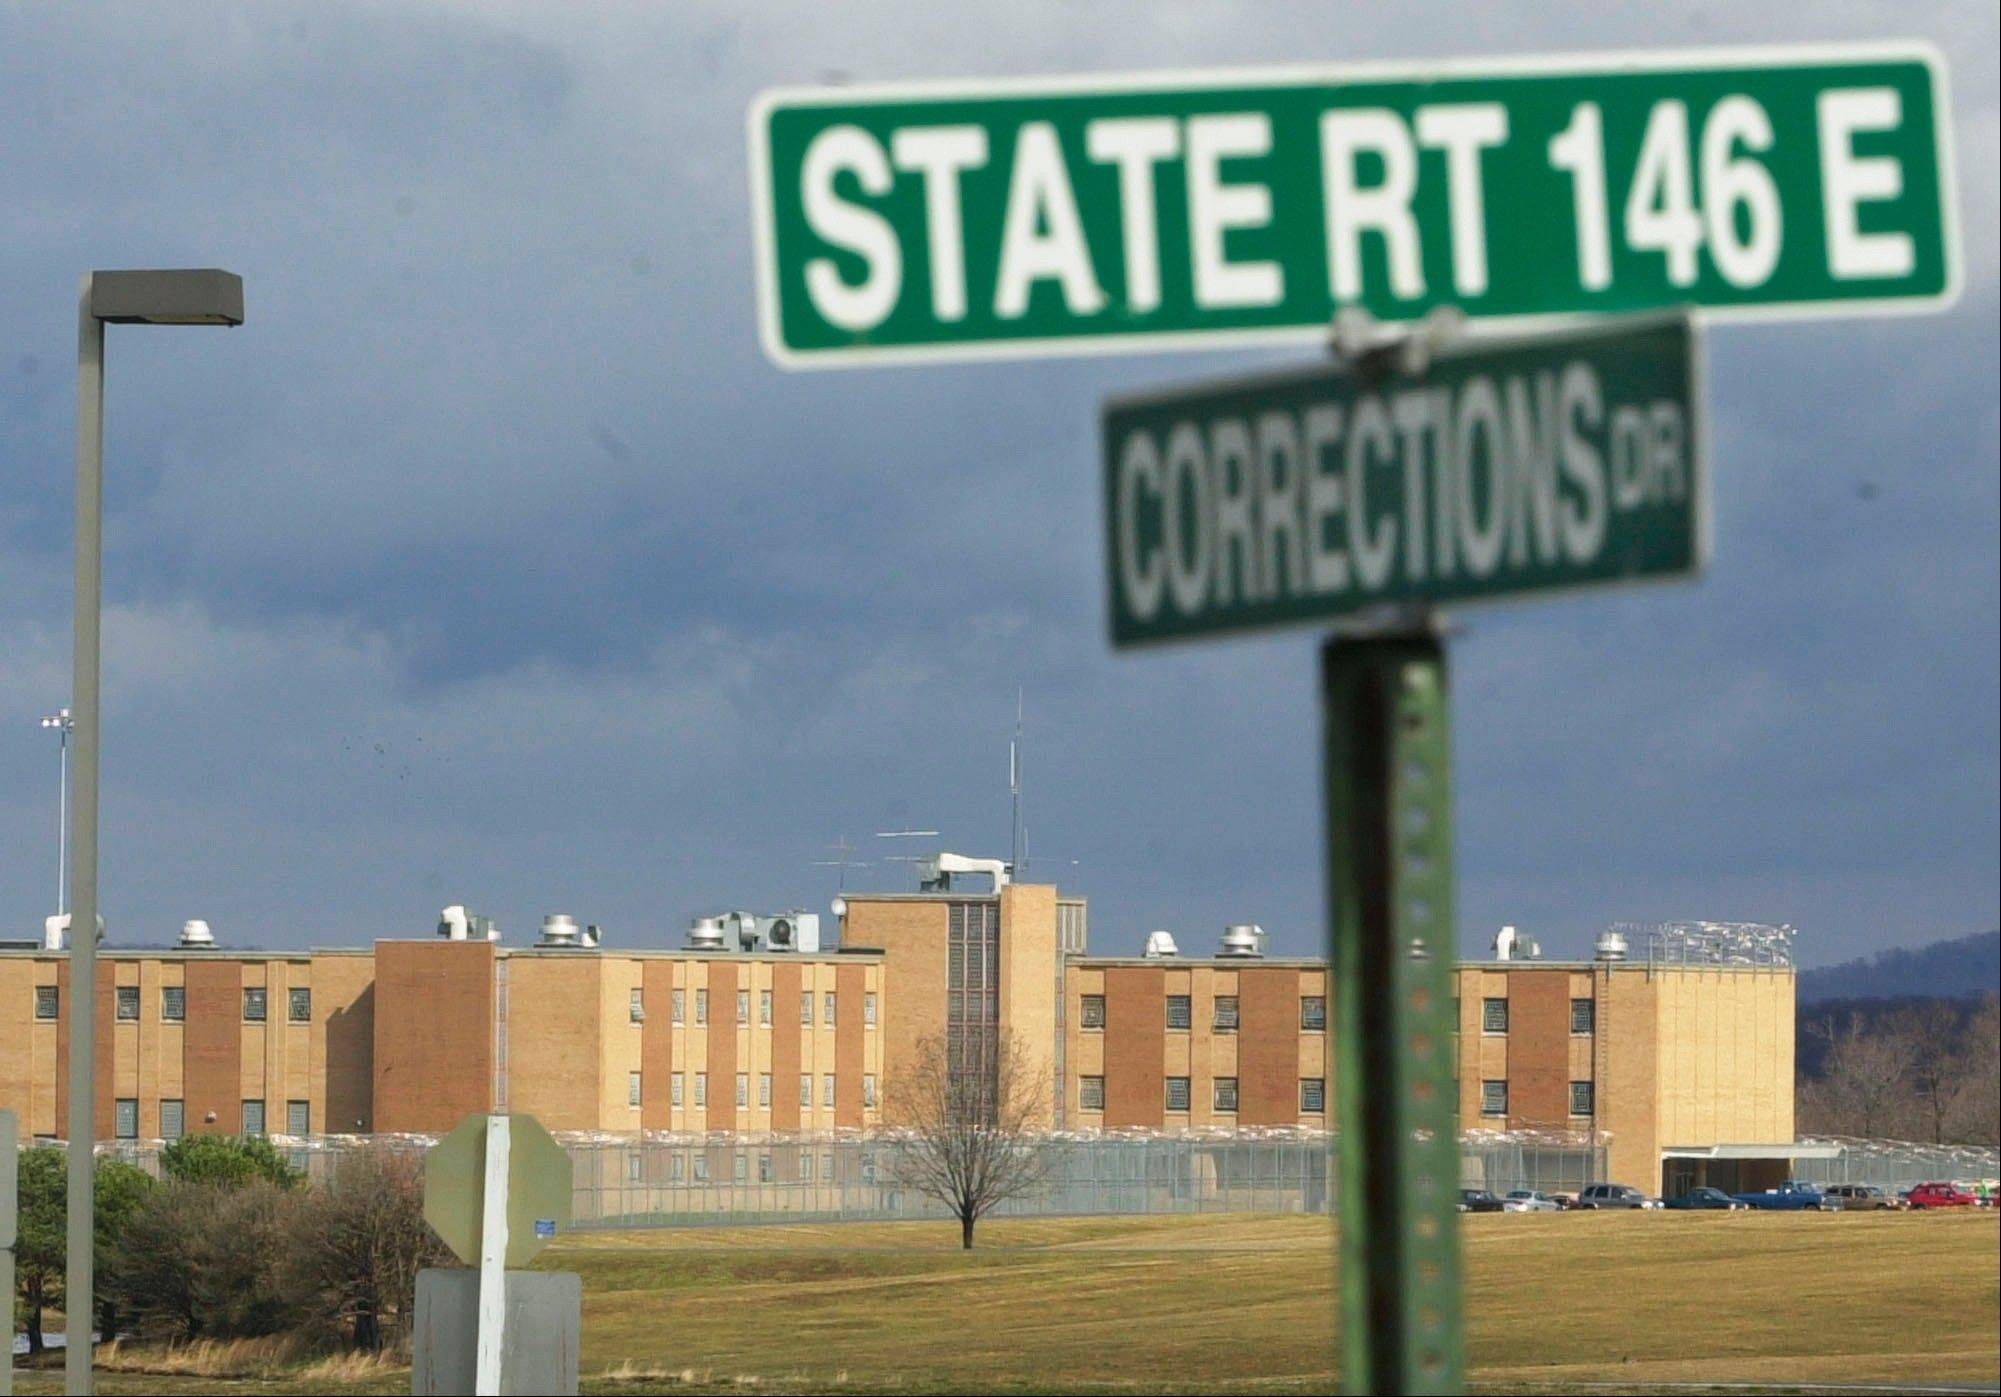 Illinois officials are dealing with a recent spate of violence in state prisons which injured several guards and an inmate, and a case where two prisoners overdosed on heroin, The Associated Press has learned. In late June, a correctional sergeant at the Vienna prison was punched by an inmate when he intervened in an argument between the inmate and an officer, according to local union president Lt. Mike Turner.